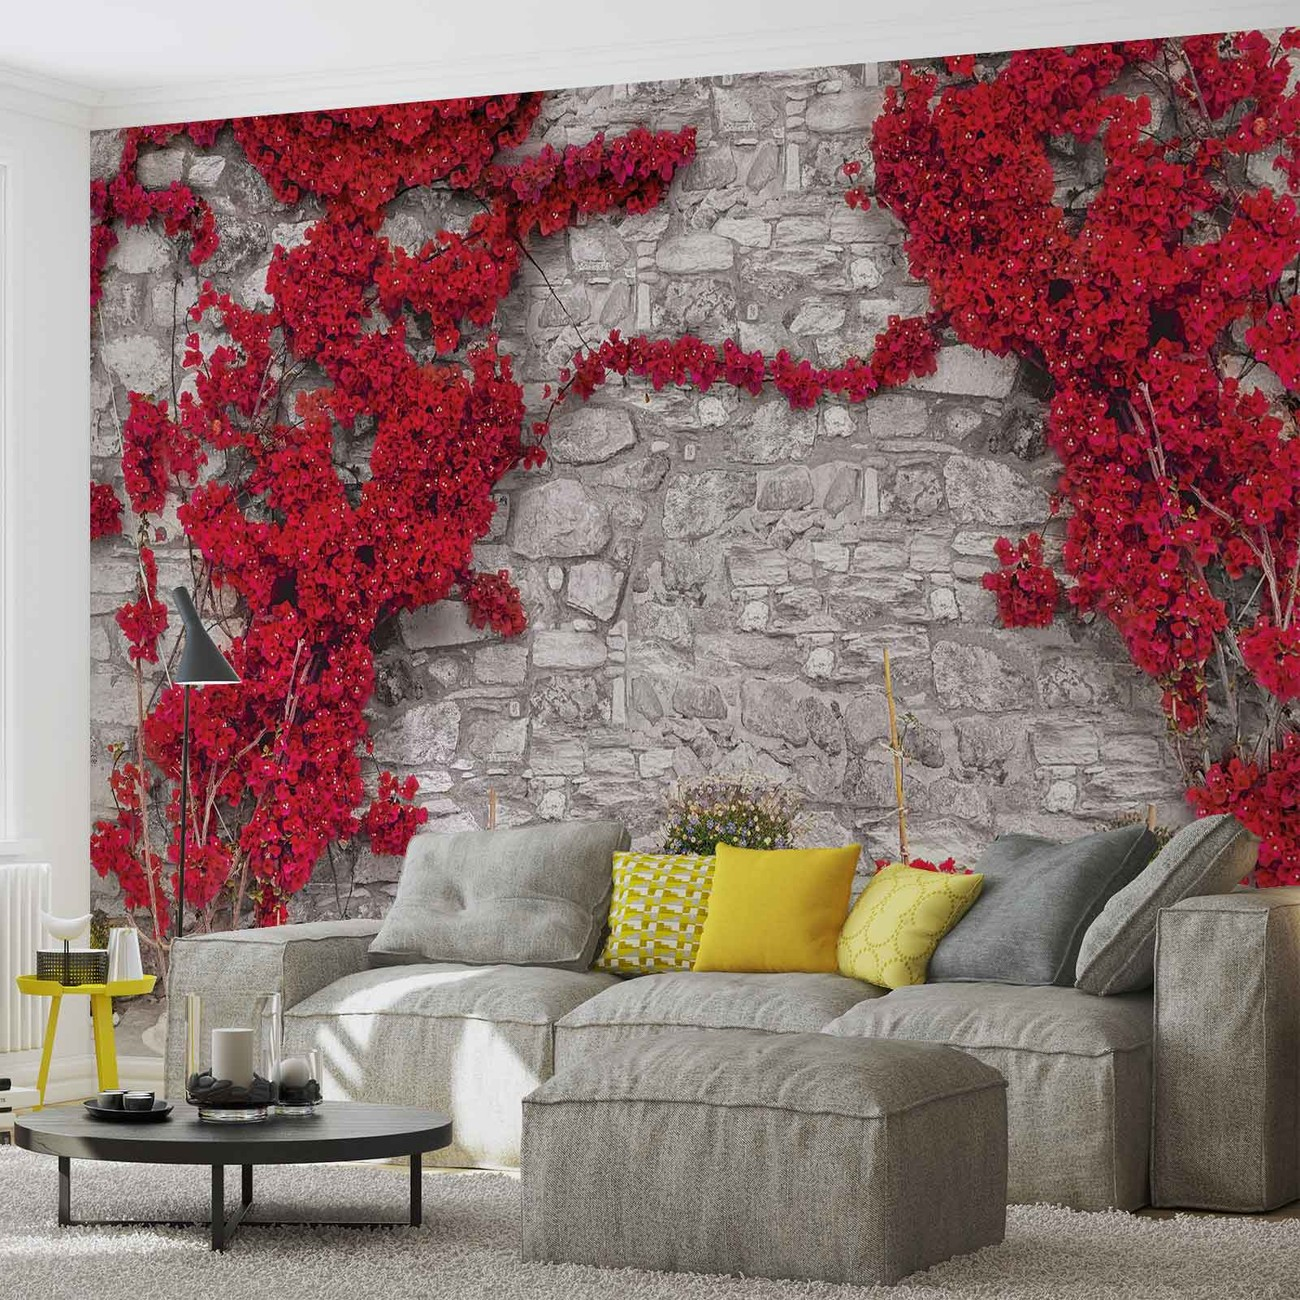 red flowers stone wall wall paper mural buy at europosters. Black Bedroom Furniture Sets. Home Design Ideas